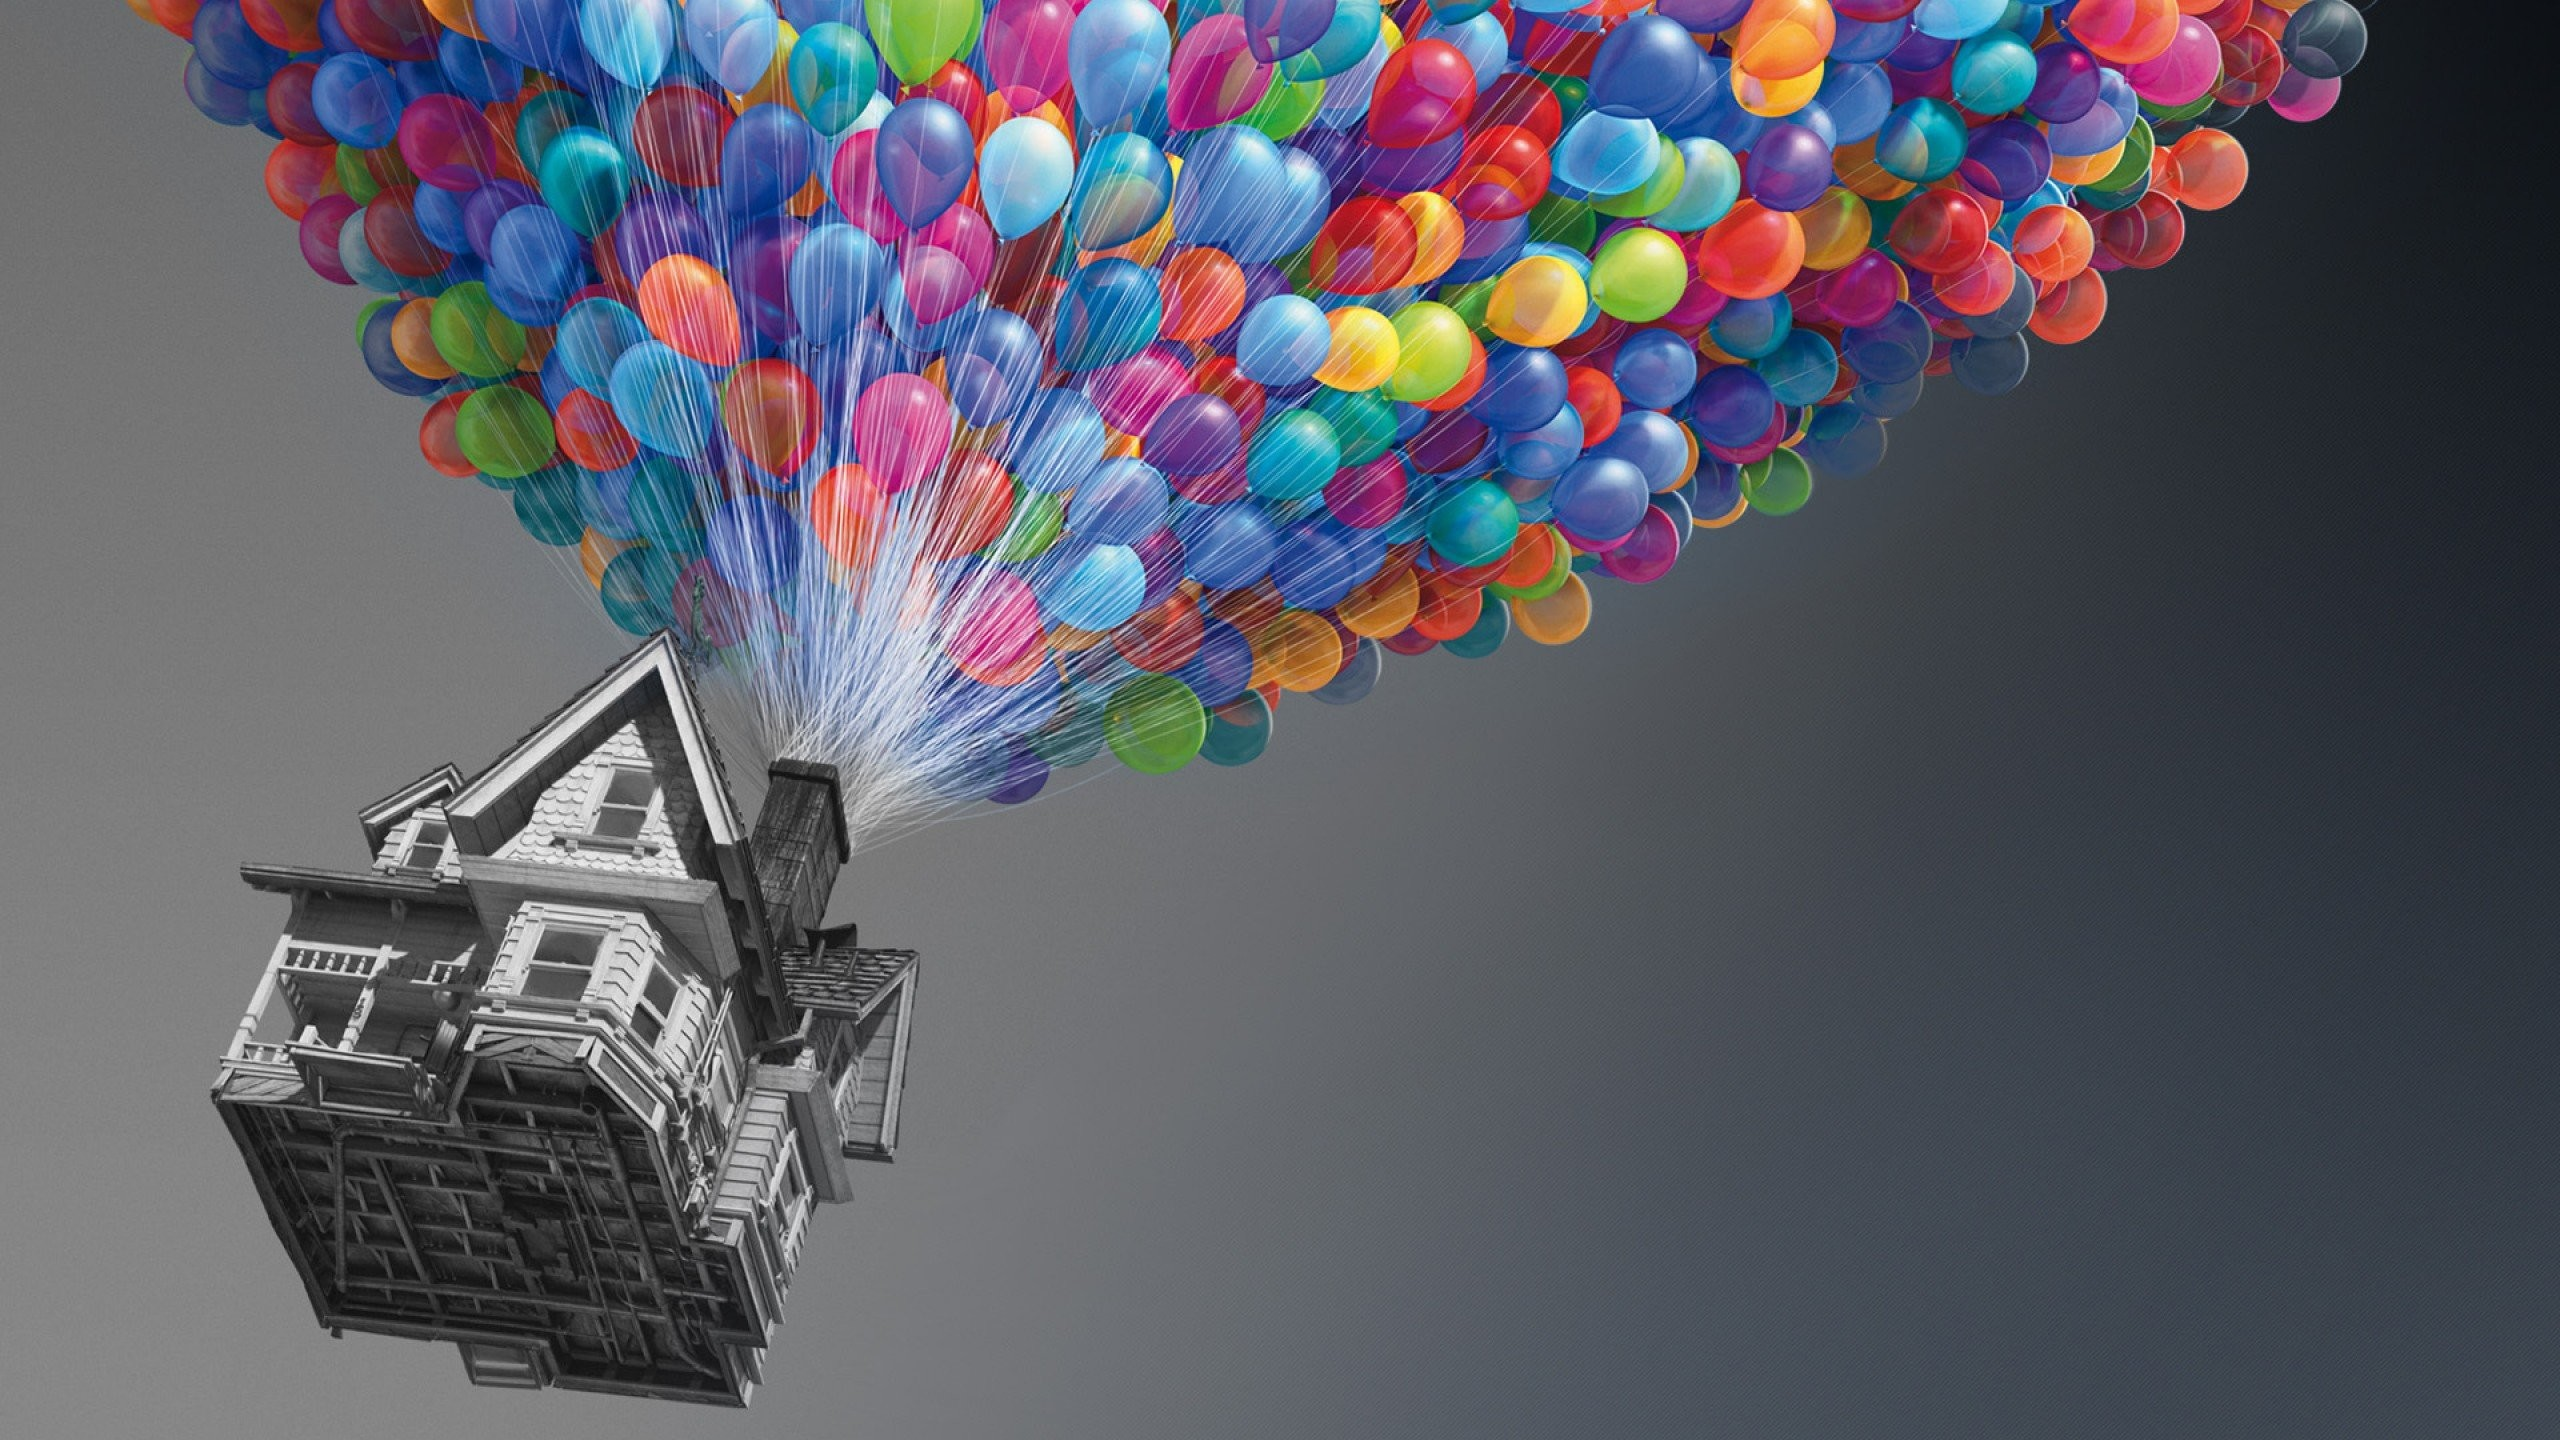 Balloons Flying Houses Movies Selective Colors free iPhone or Android Full  HD wallpaper.